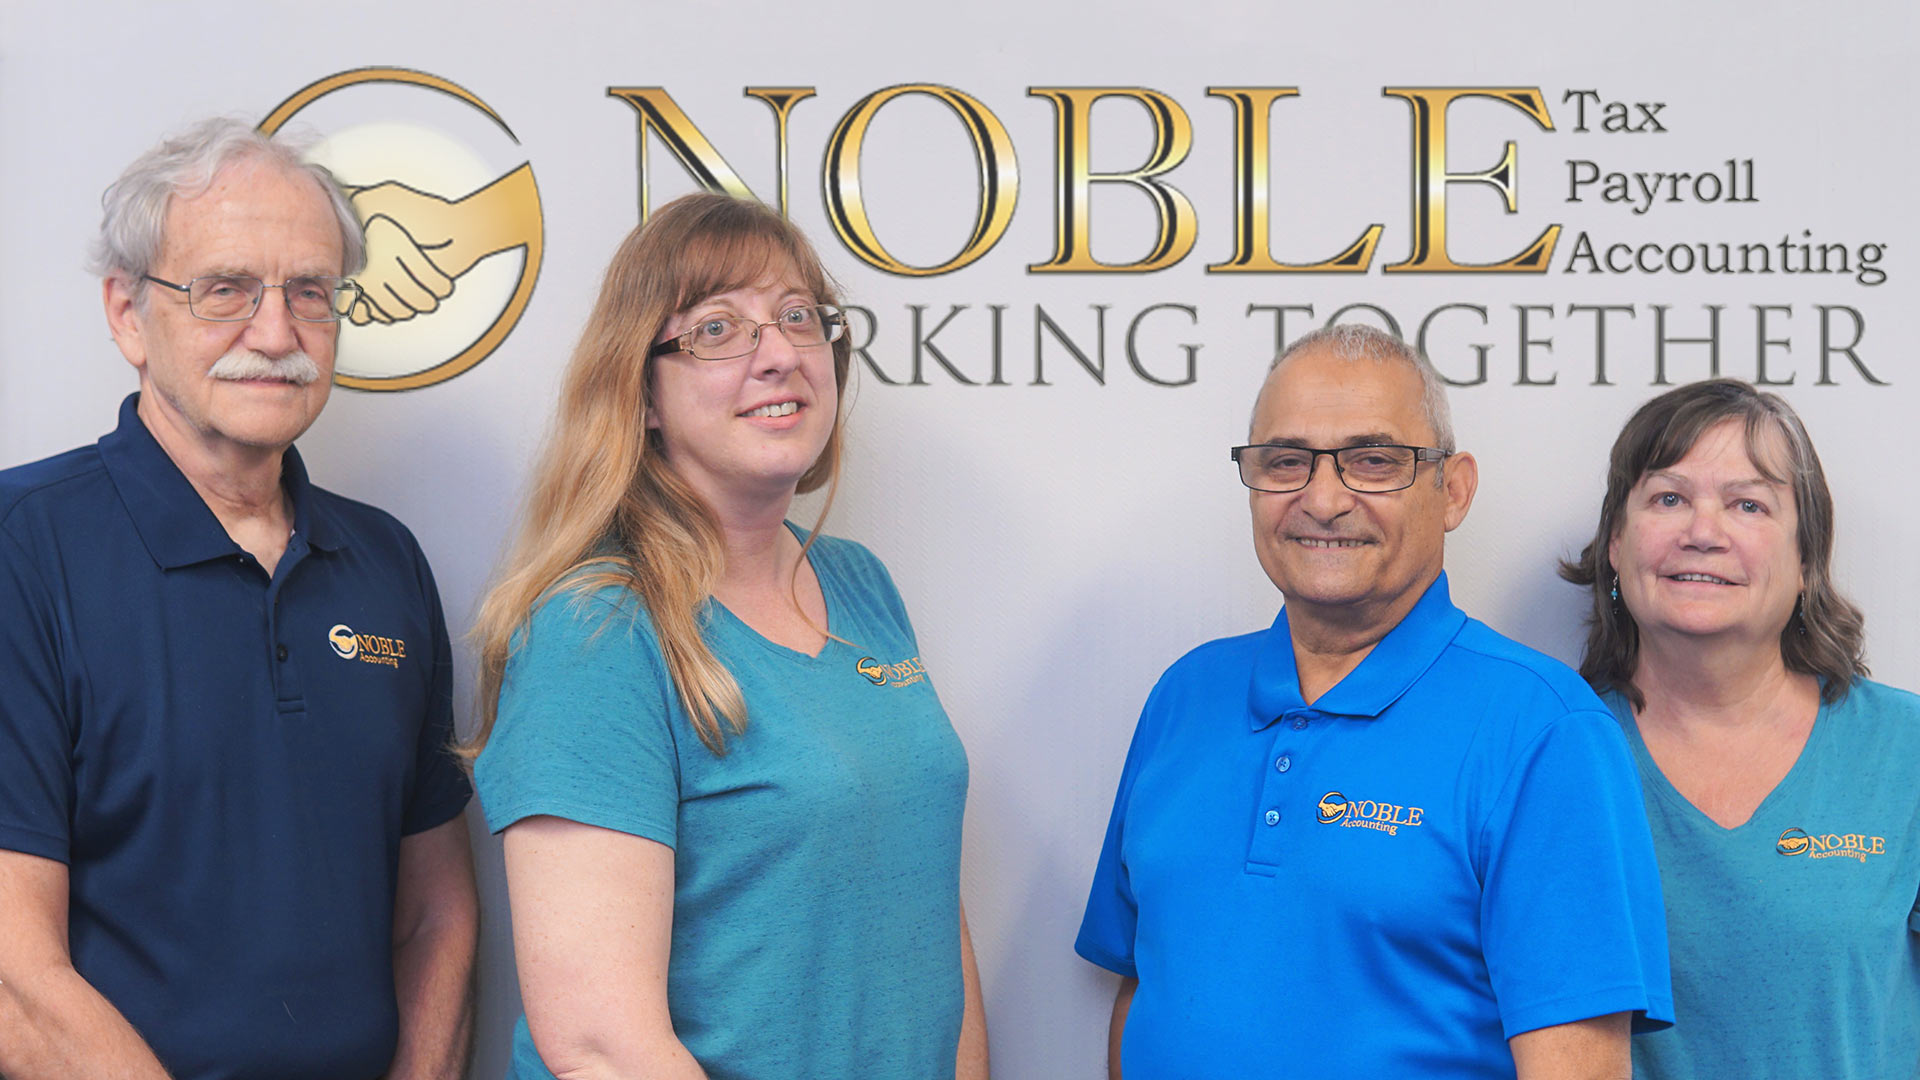 Noble-Accounting-Services-Team-1920x1080